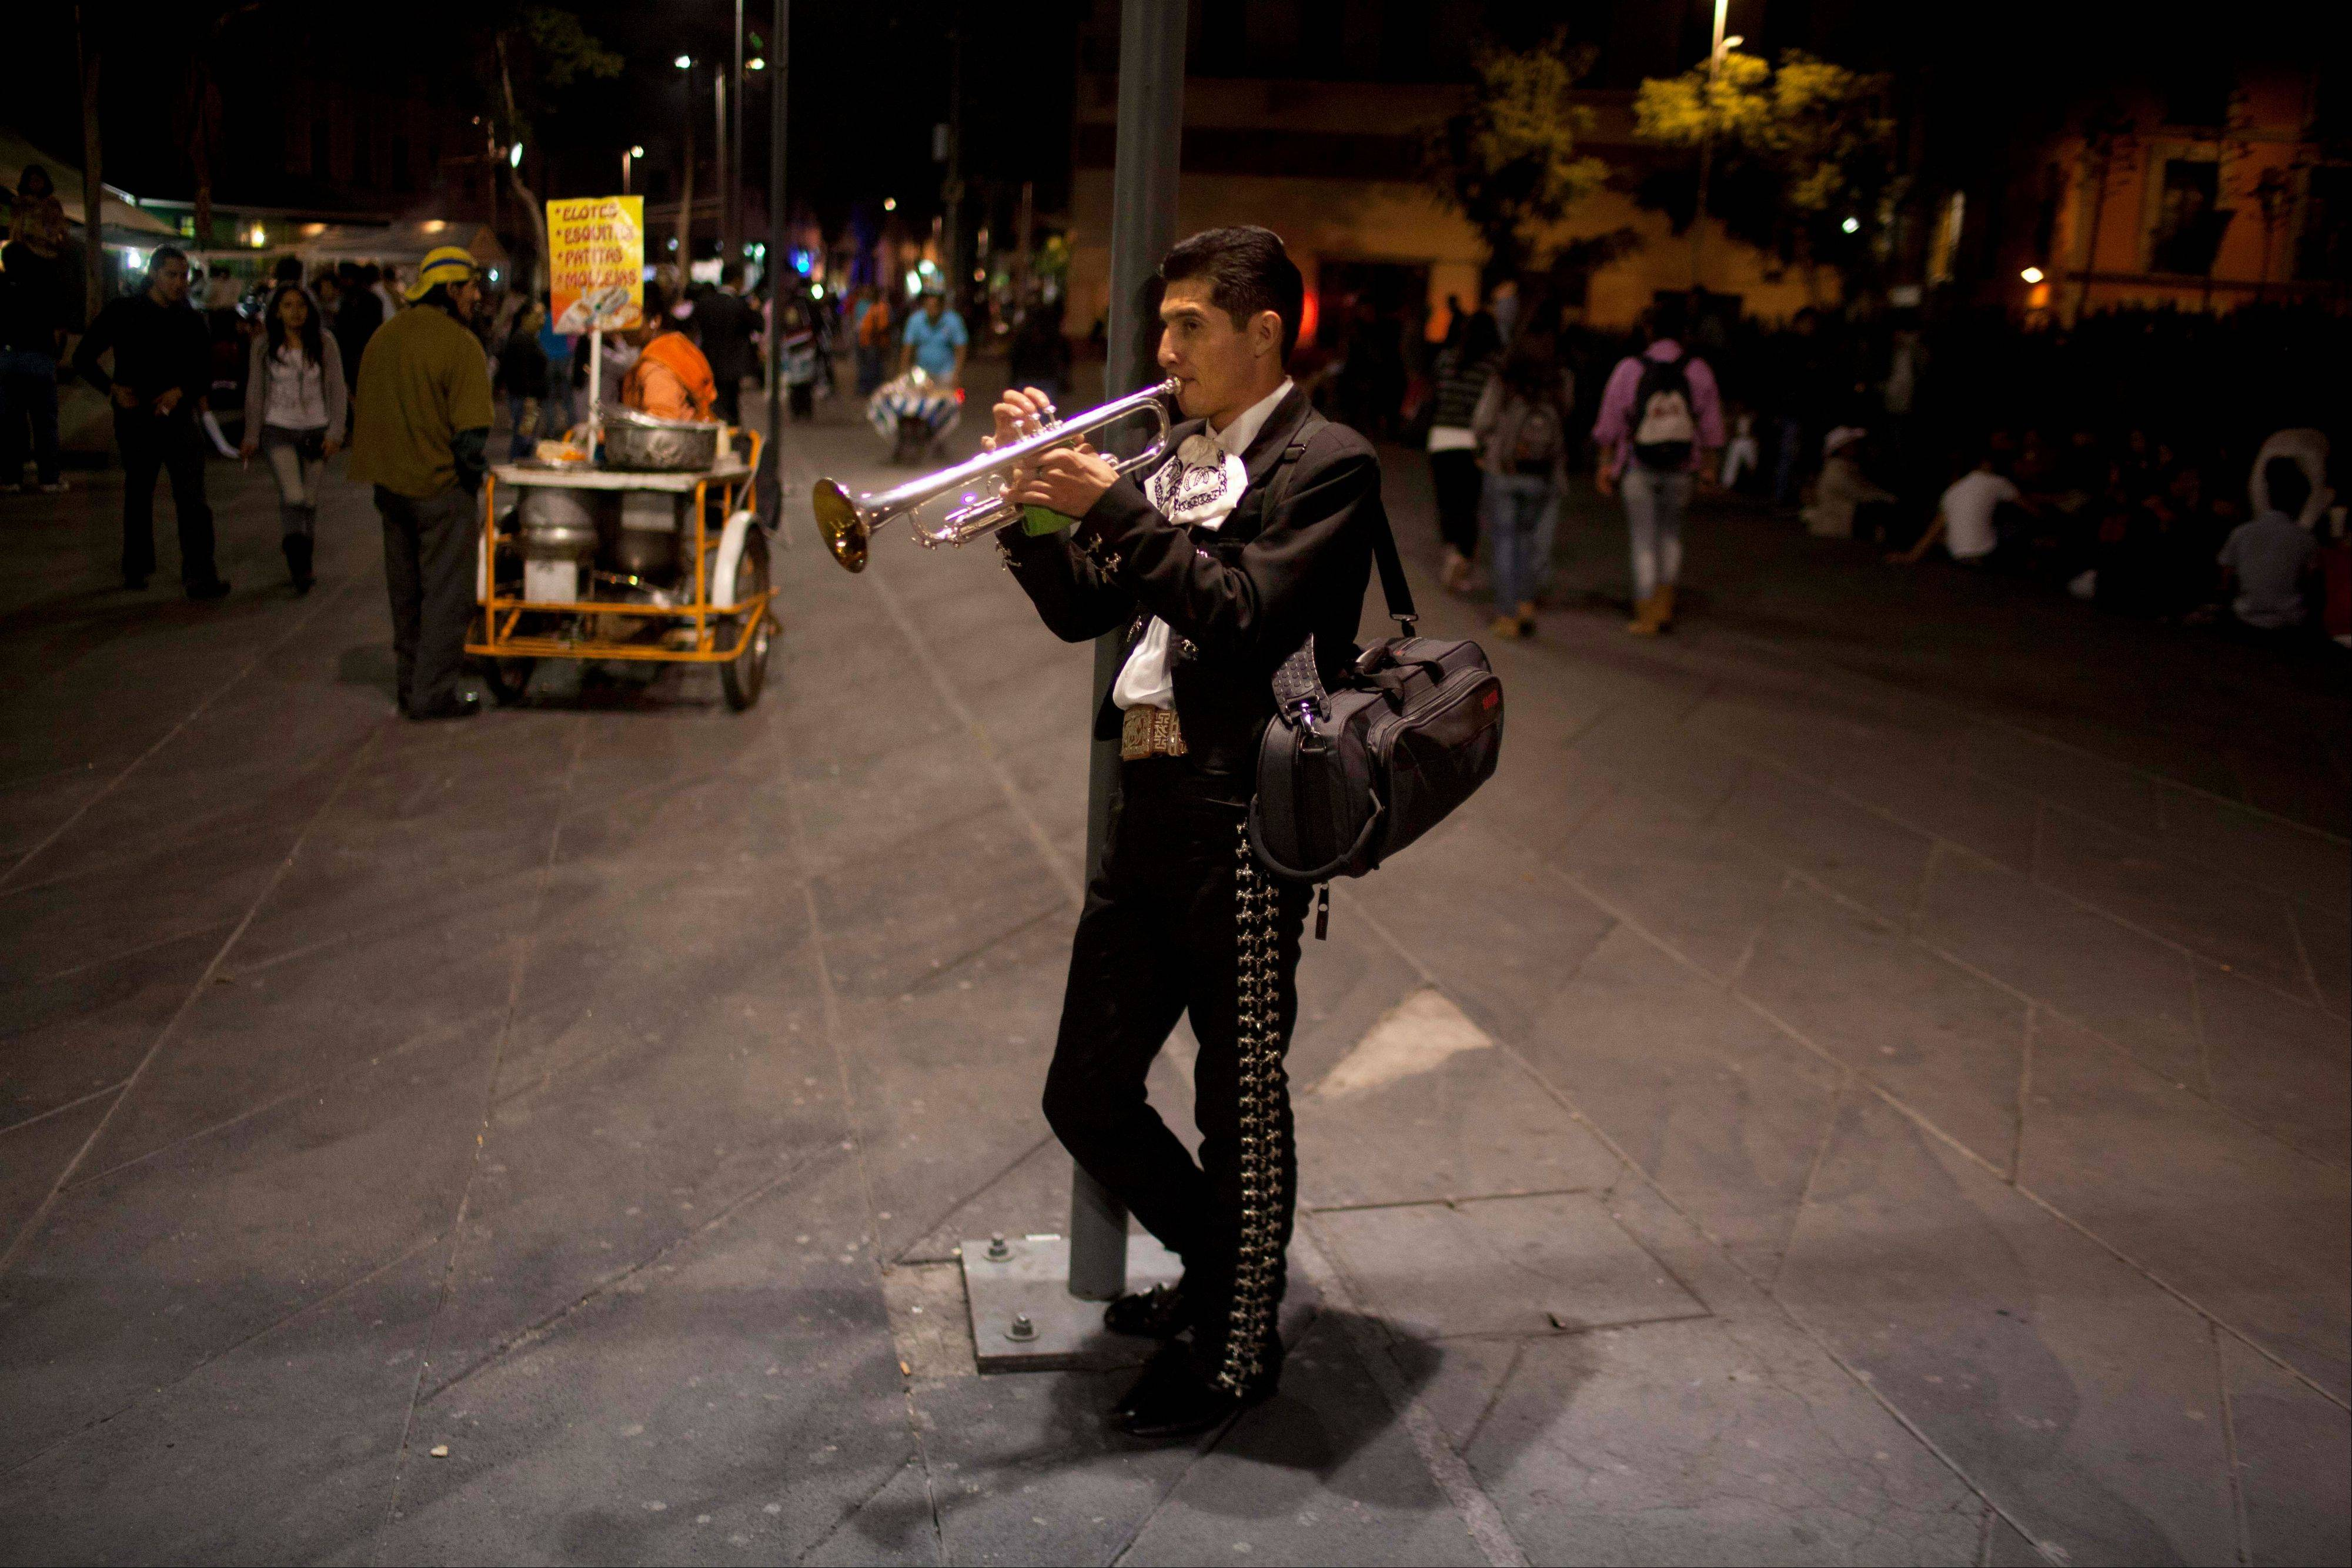 In this October 2012 photo, professor at the Mariachi School Ollin Yoliztli, Eduardo Sanchez Ortiz, practices as he waits for clients at Plaza Garibaldi in Mexico City. The new mariachi school in Mexico City is seeking to revive a music that's lost ground over the years. The school, whose name means life and movement in indigenous Nahautl, teaches folk bands how to play professionally while grooming a new generation of songwriters and composers.